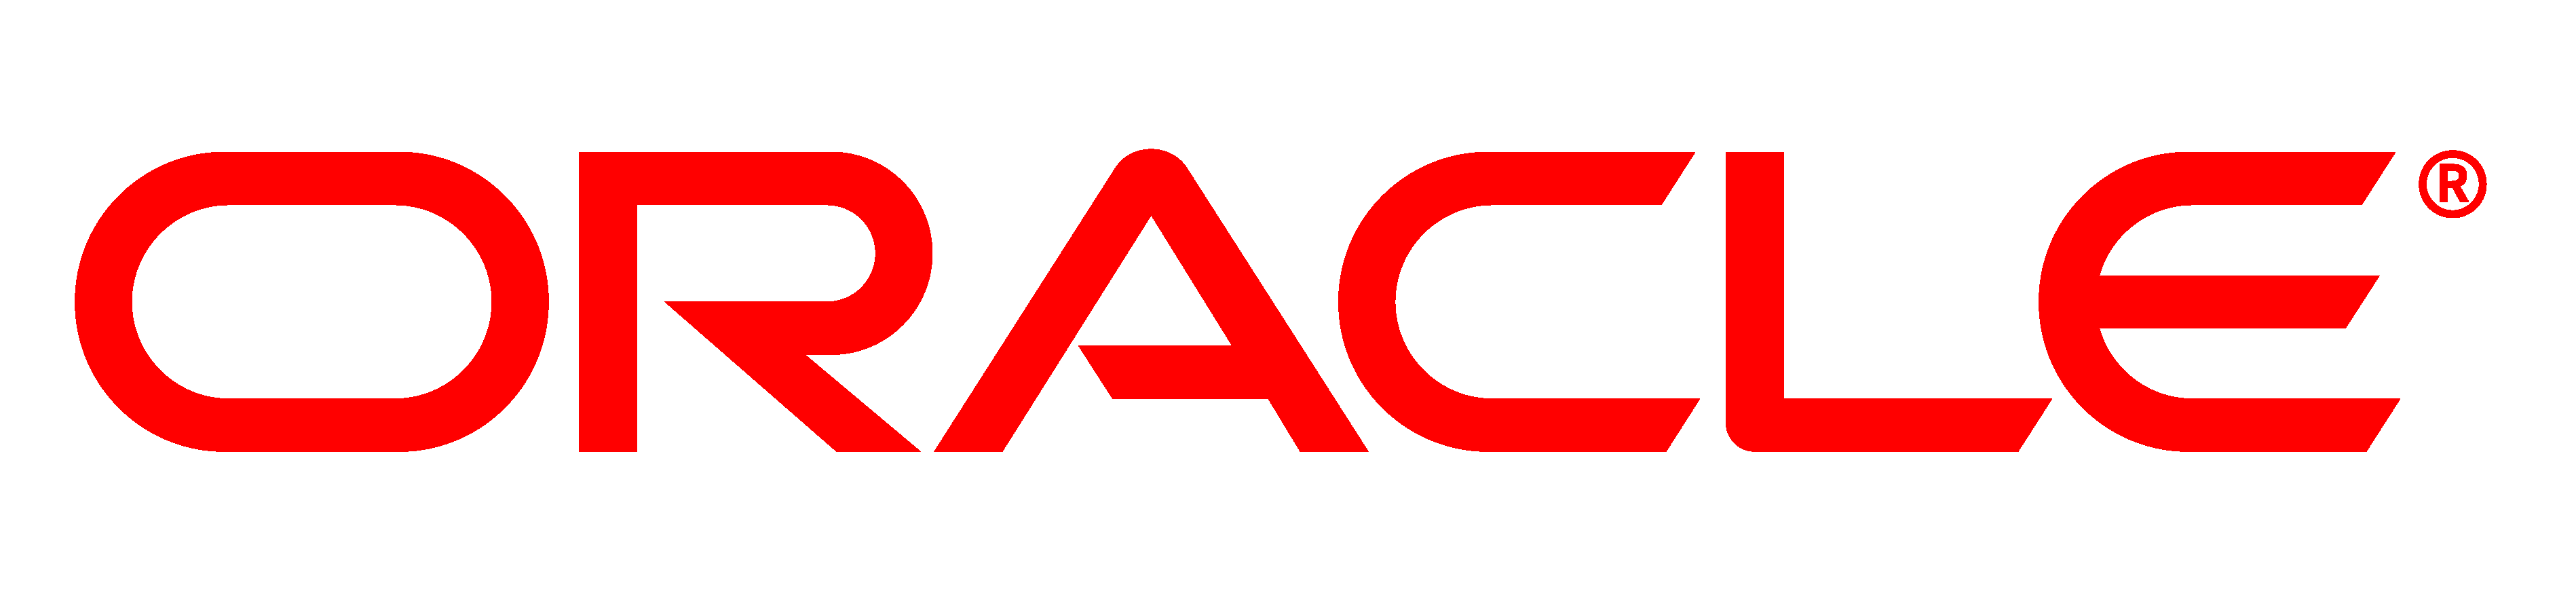 A business logo of Oracle